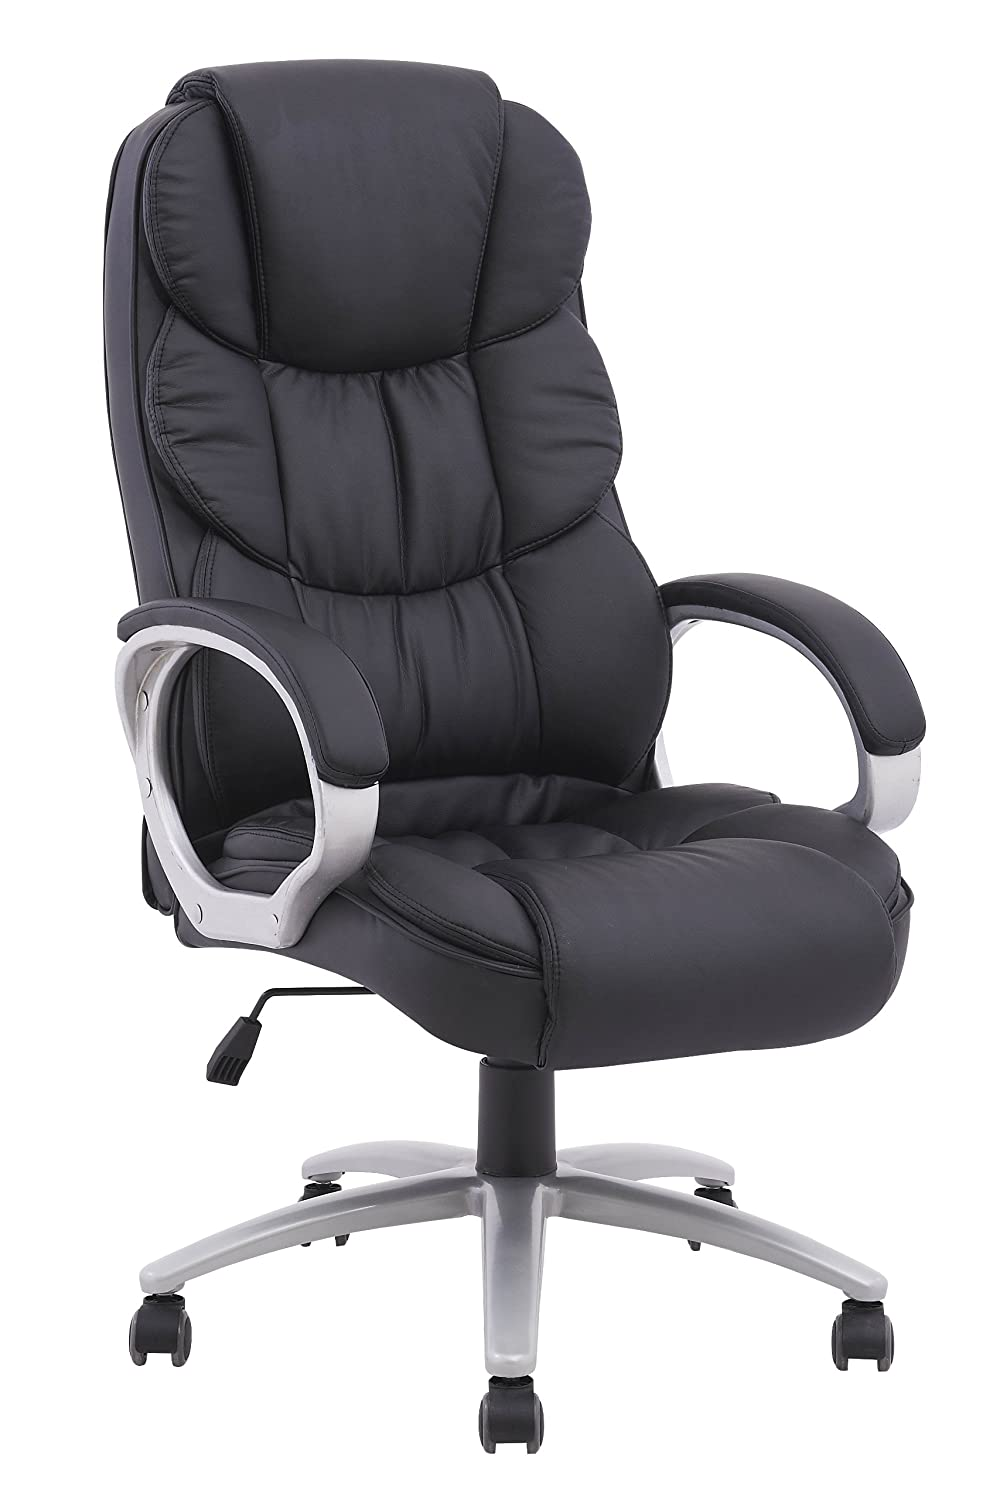 Amazoncom BestOffice Ergonomic PU Leather High Back Office Chair - Office computer chairs